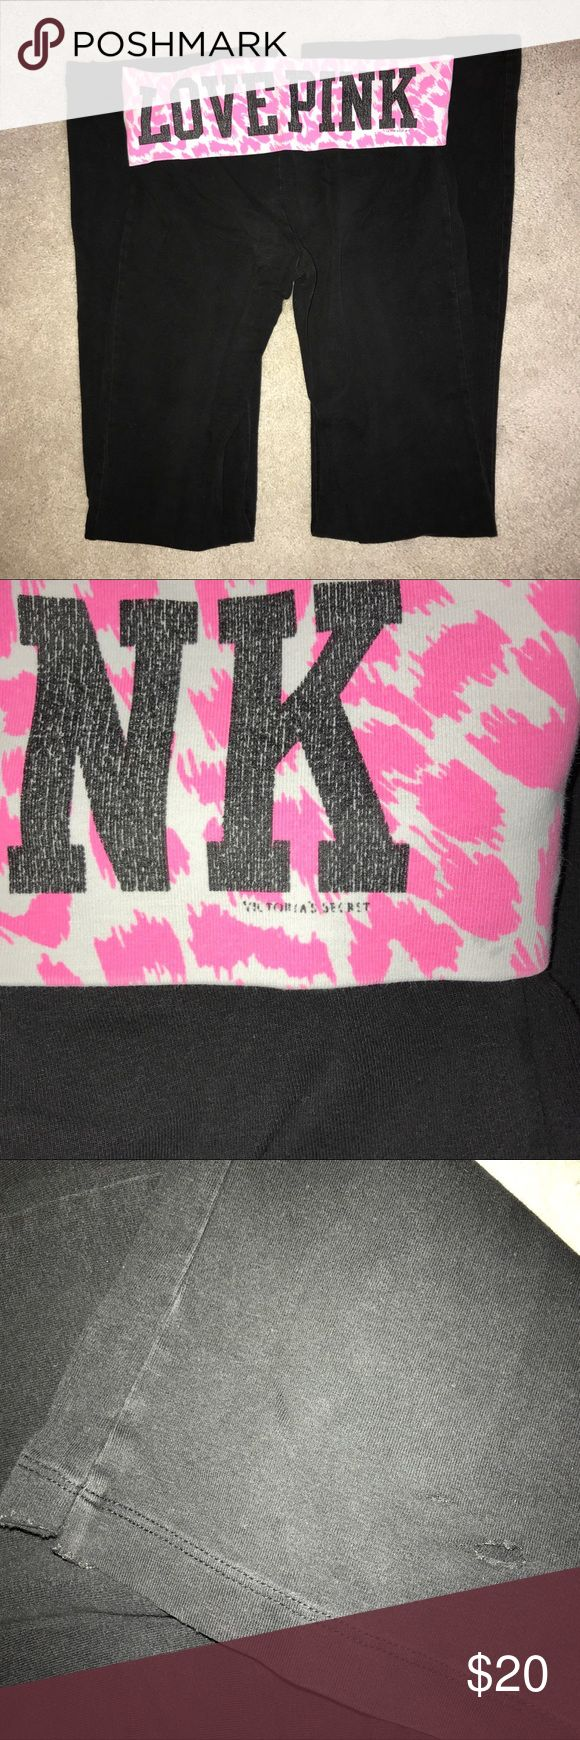 Victoria's Secret Pink Boot Cut Yoga Pants LOVE PINK yogas Black, white, & pink cheetah print Boot cut with slight tear at the bottom of the pants Slight cracking of print PINK Victoria's Secret Pants Boot Cut & Flare